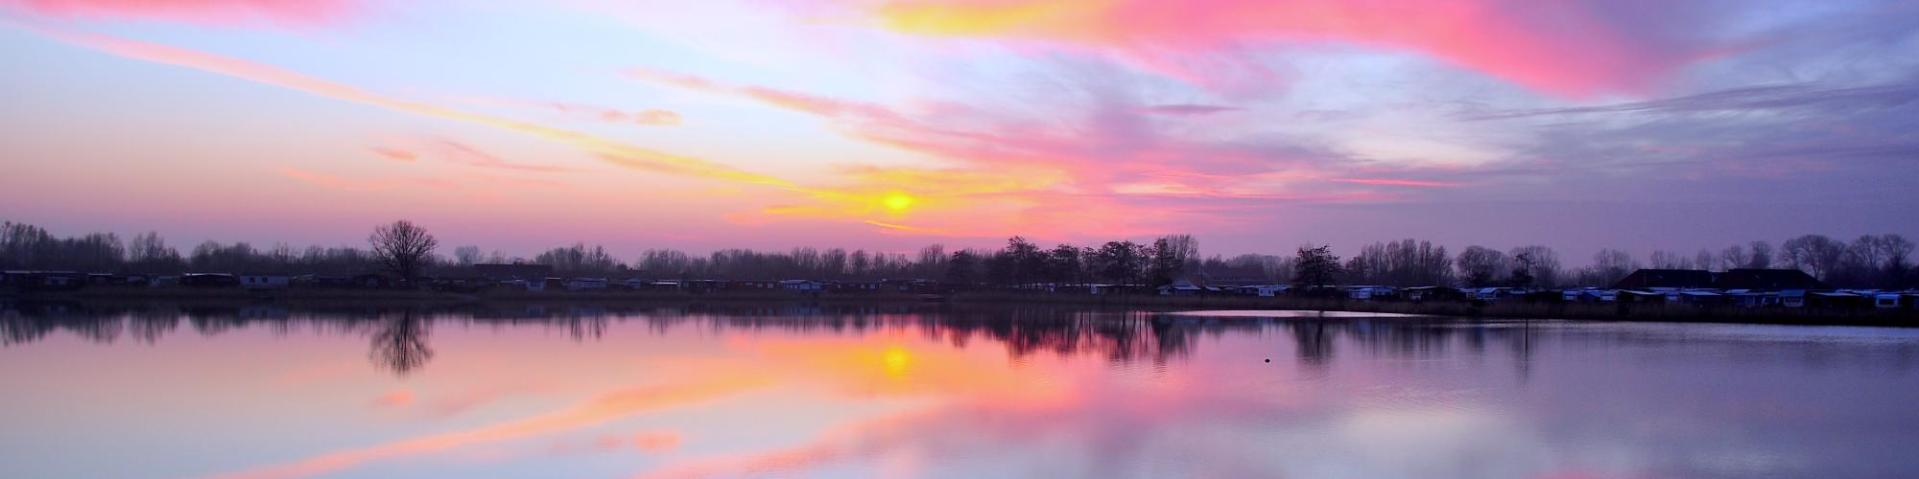 Where To Host WordPress Site Go Fishing Sunset Lake Colors - 2 - Optimized Featured Image